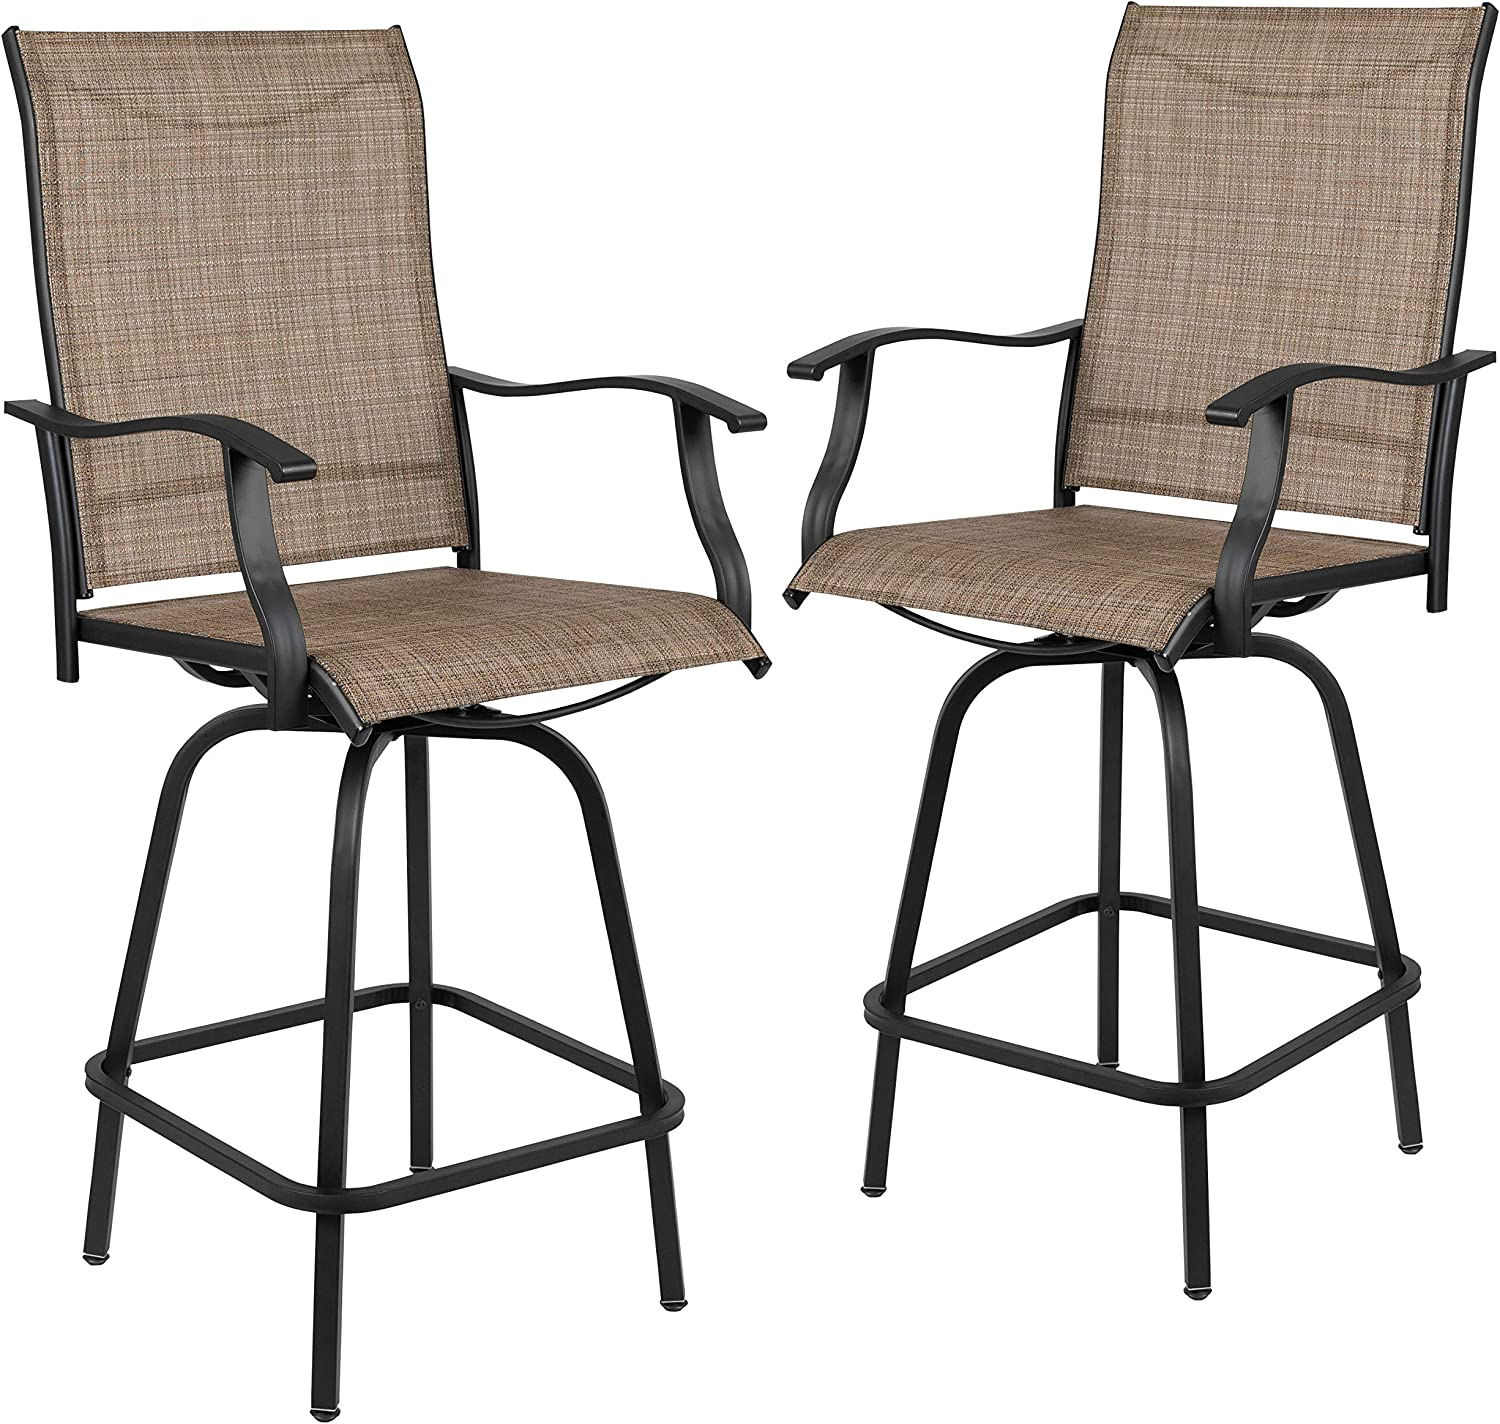 "Flash Furniture 30"" All-Weather Patio Swivel Outdoor Stools, Brown, Set of 2"